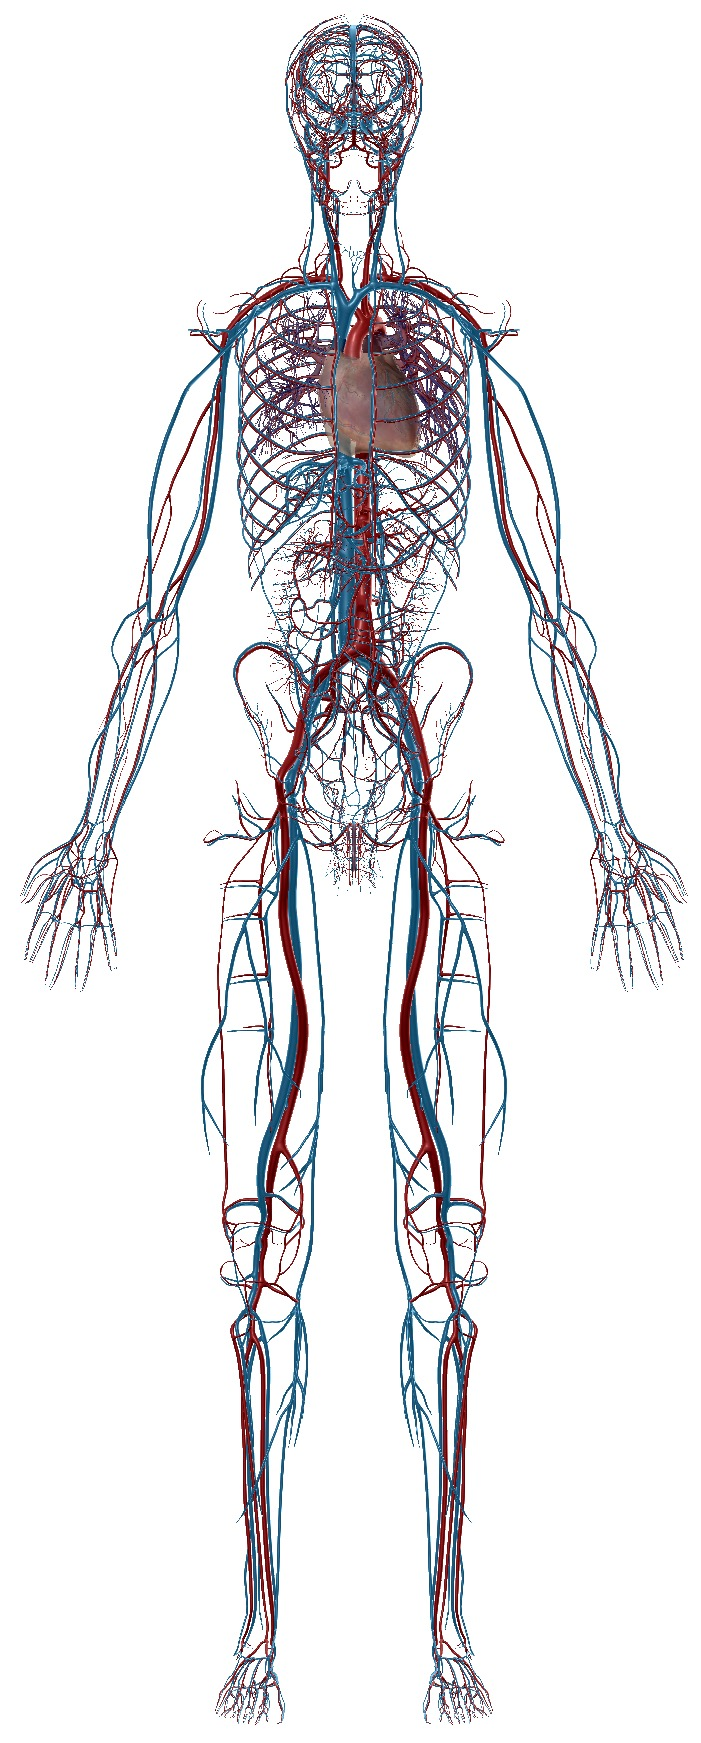 The Circulatory System, arteries, veins & heart,  Image, Visible Body Atlas app